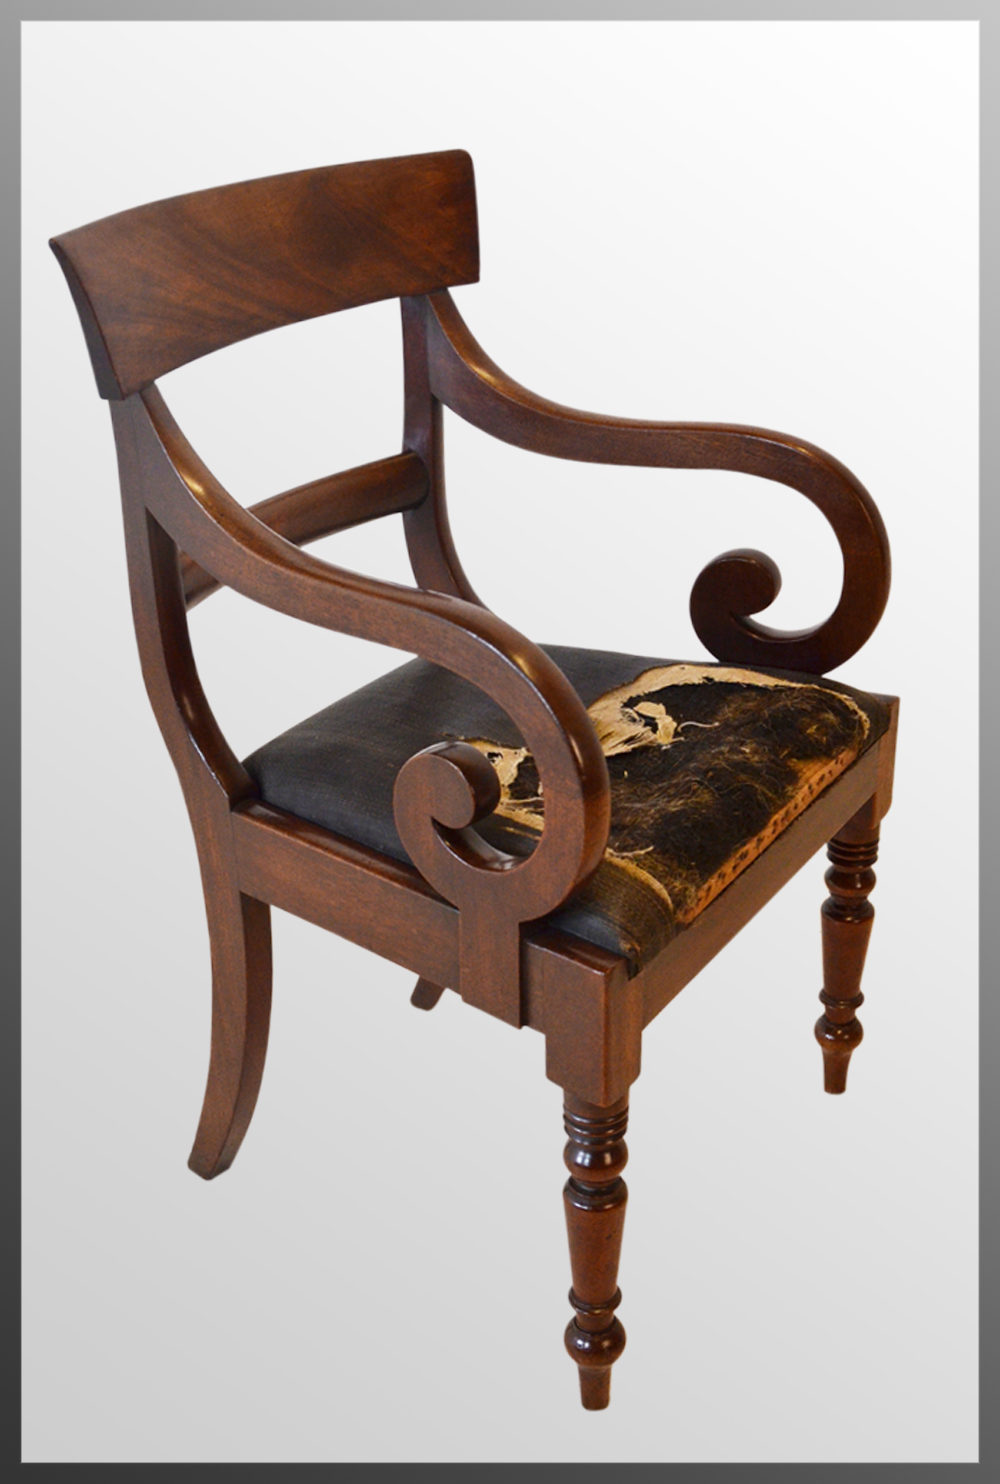 Regency Armchair English Chair Scroll Arm - Antiques Atlas